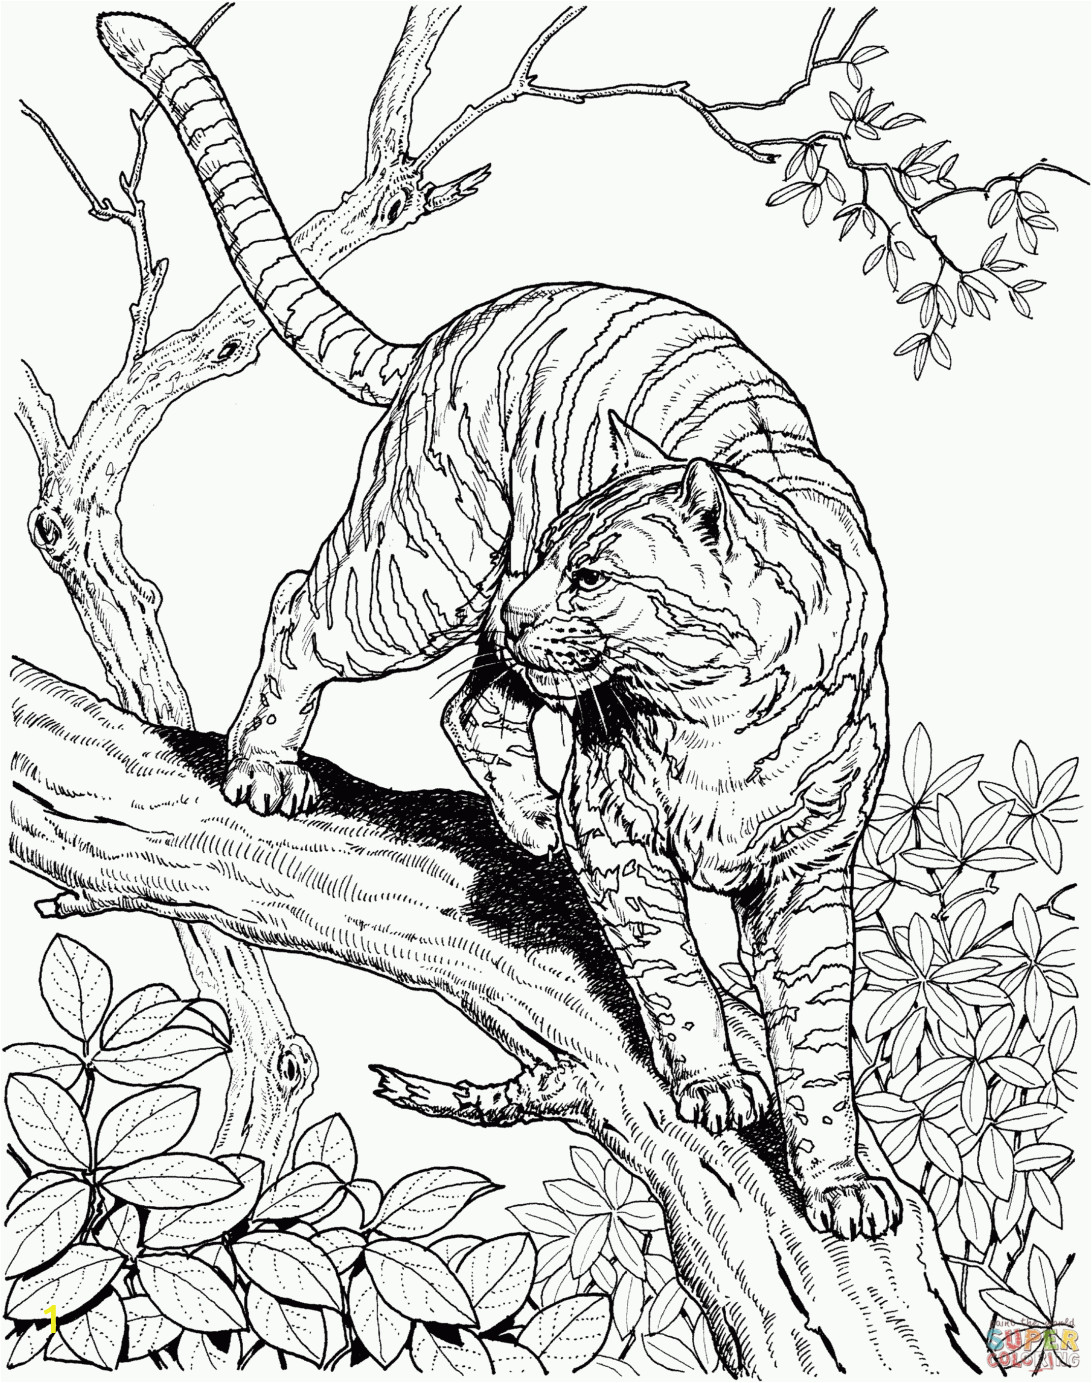 realistic dog coloring pages to print and color free printable animal for kids baby sheets valentine puppy cartoon easy cat toddlers 1092x1383